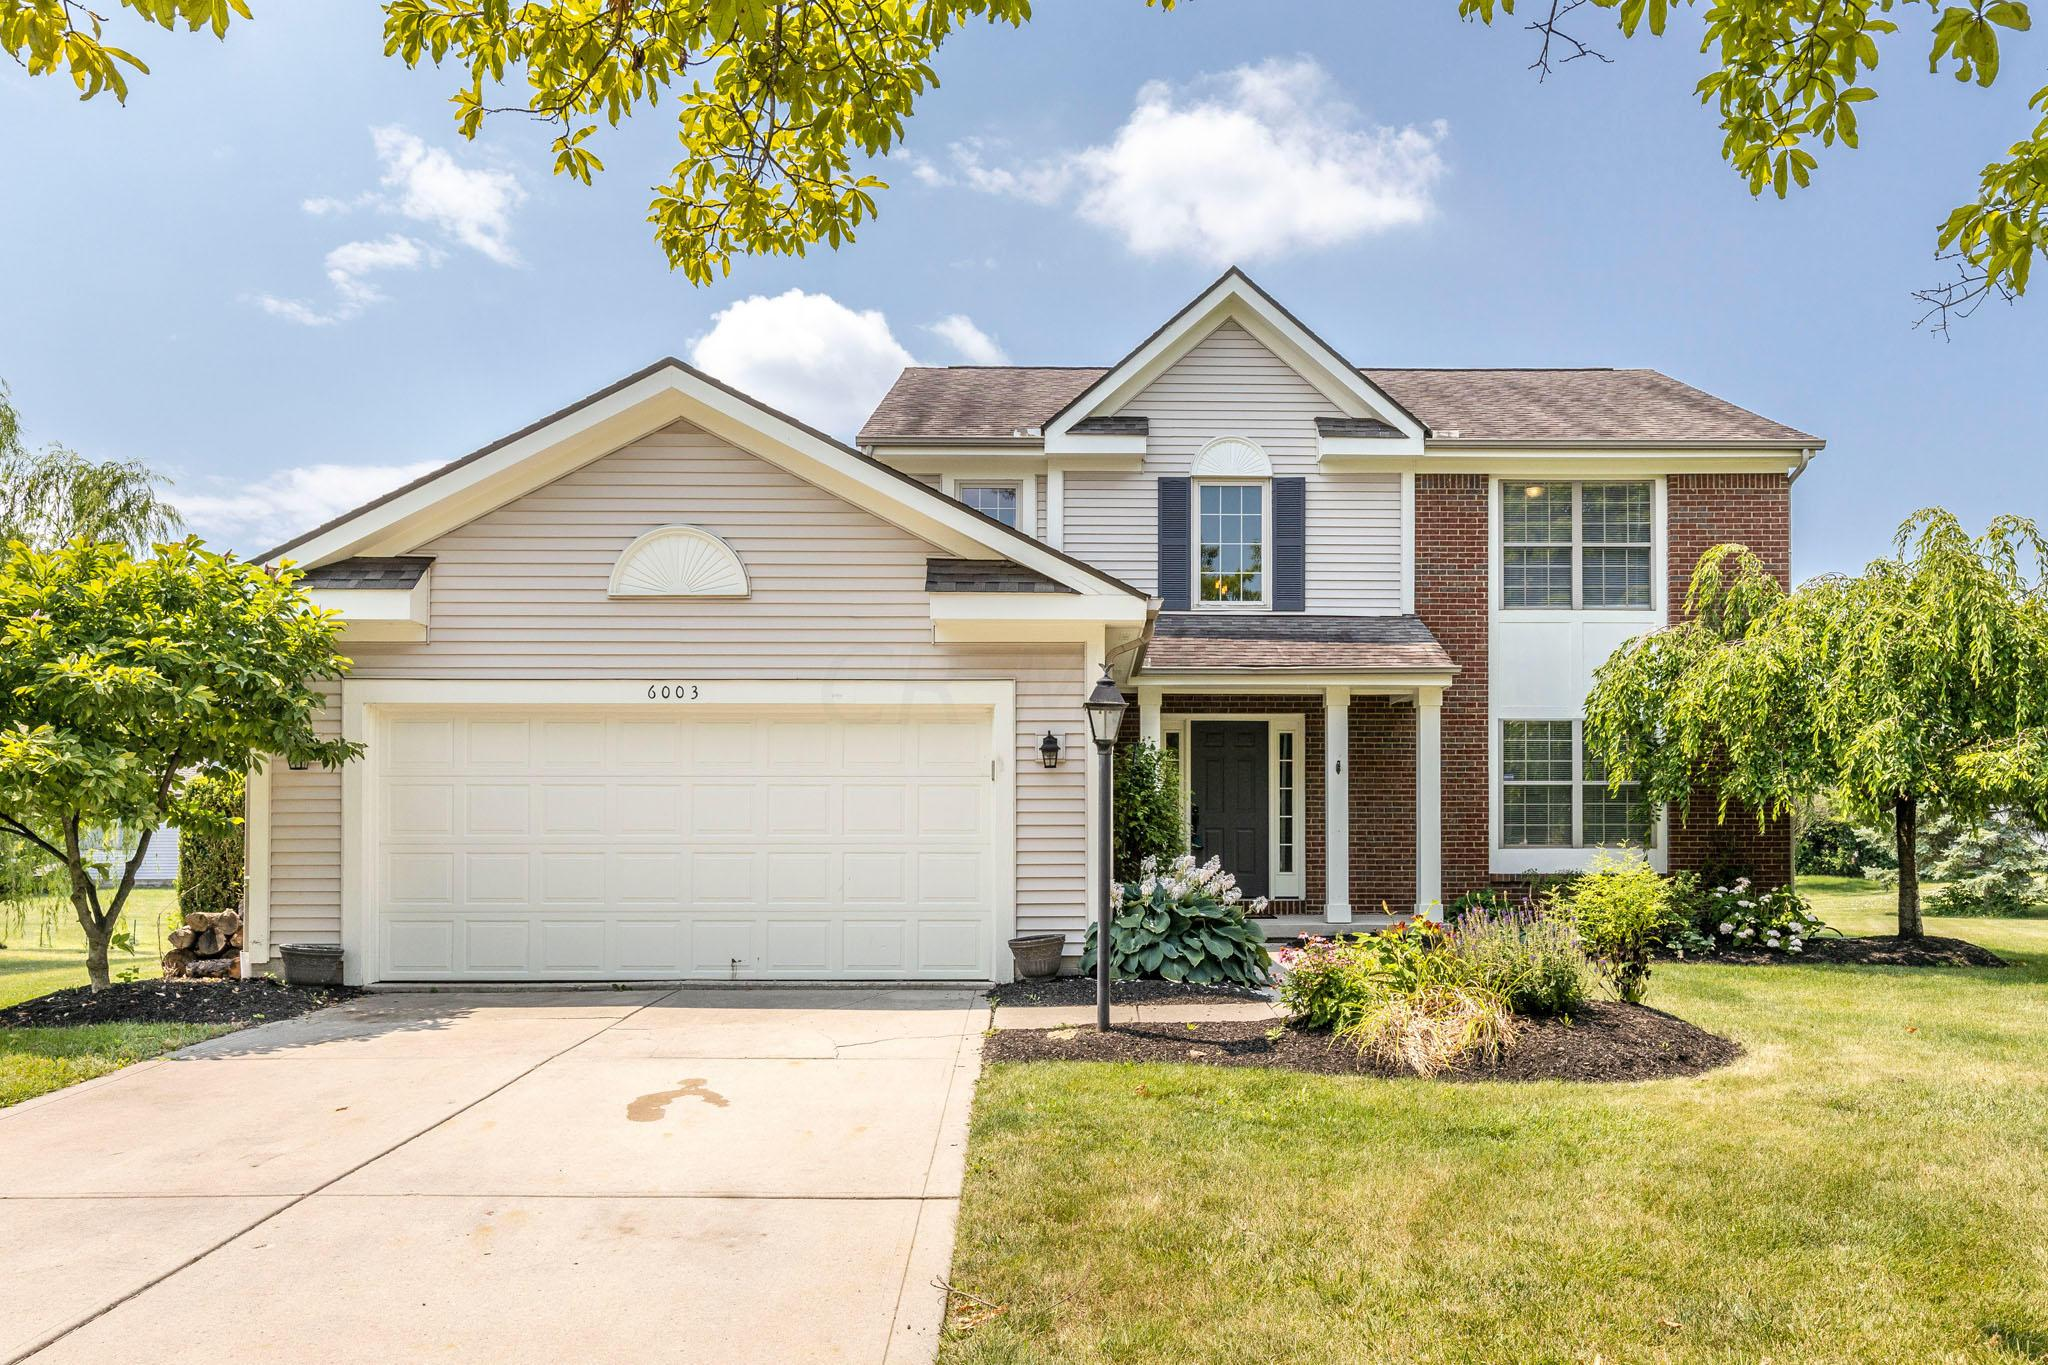 Photo of 6003 Northcliff Court, Dublin, OH 43016